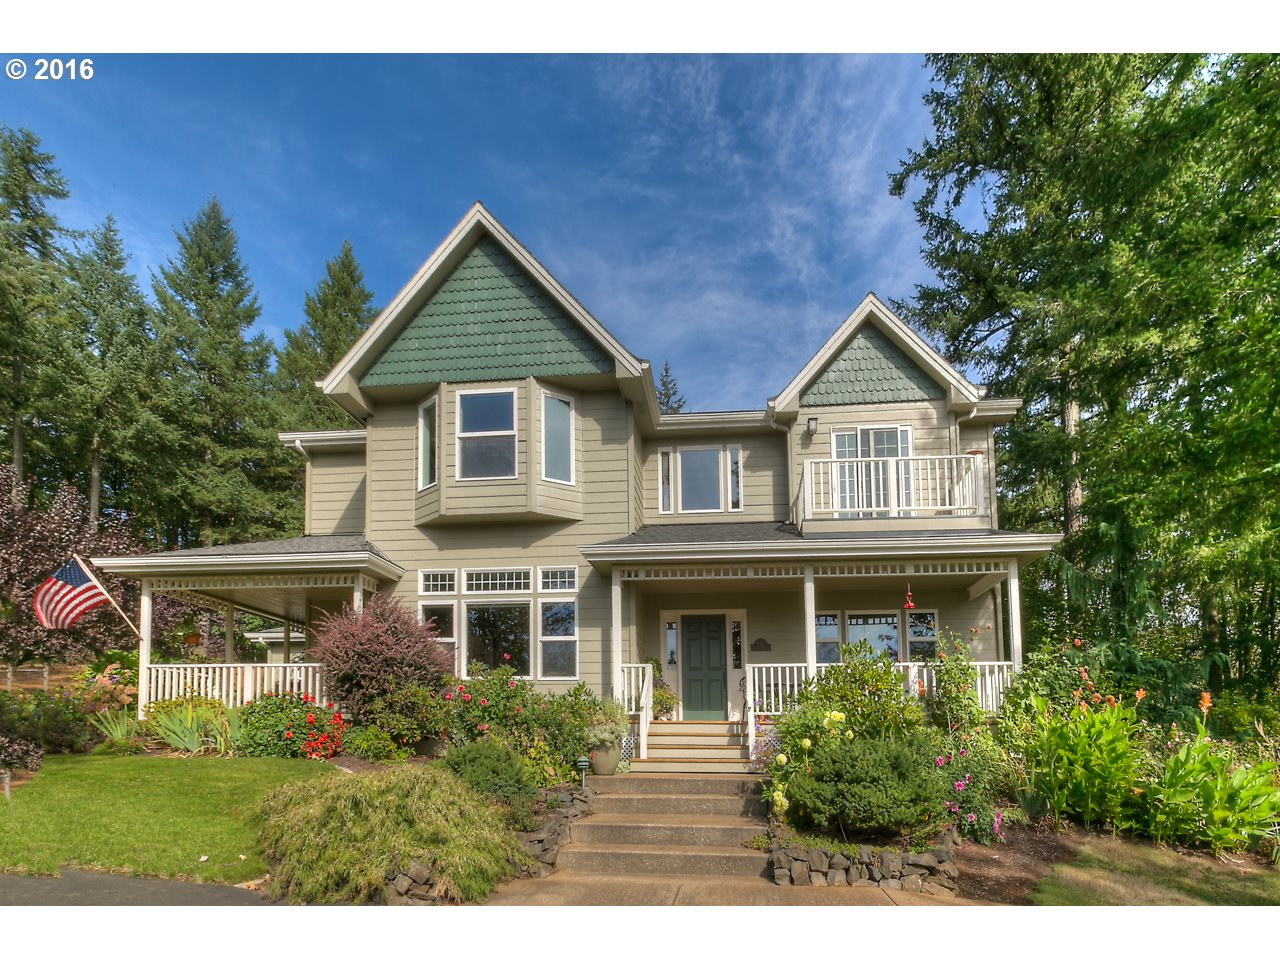 3131 CONCOMLY RD S, Salem, OR 97306